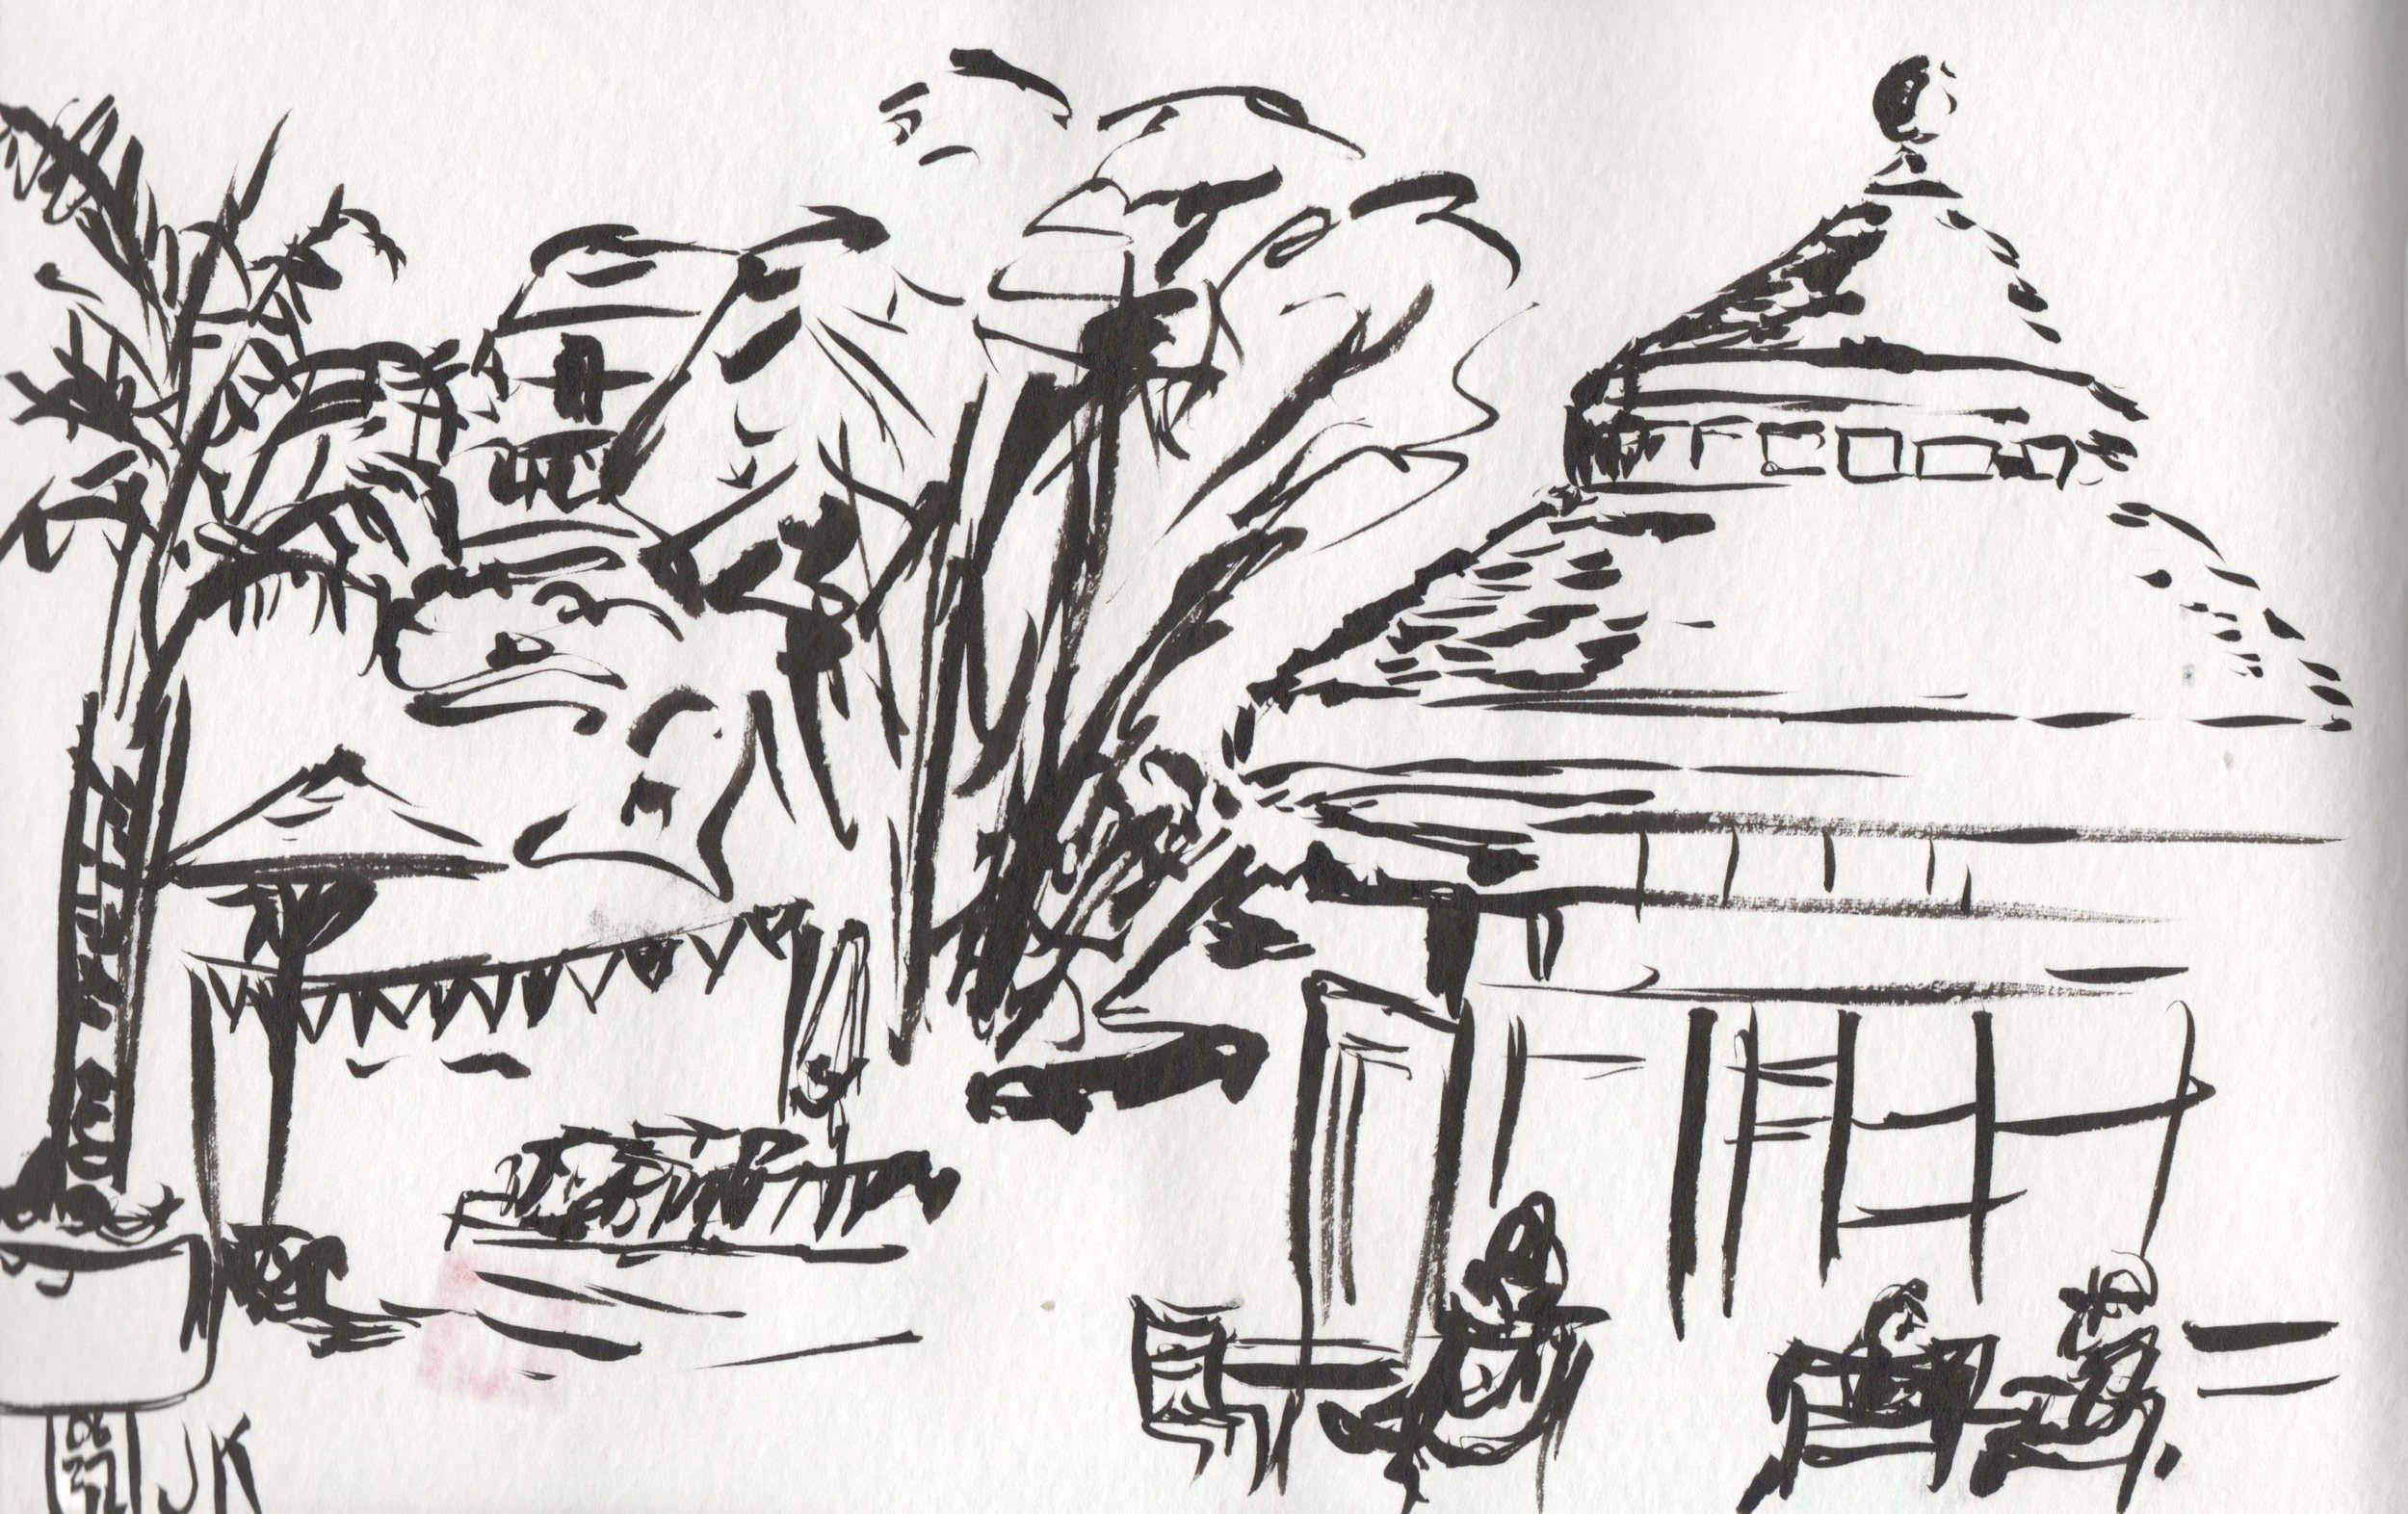 Sketching at the Claremont Resort with just my Pentel brush pen